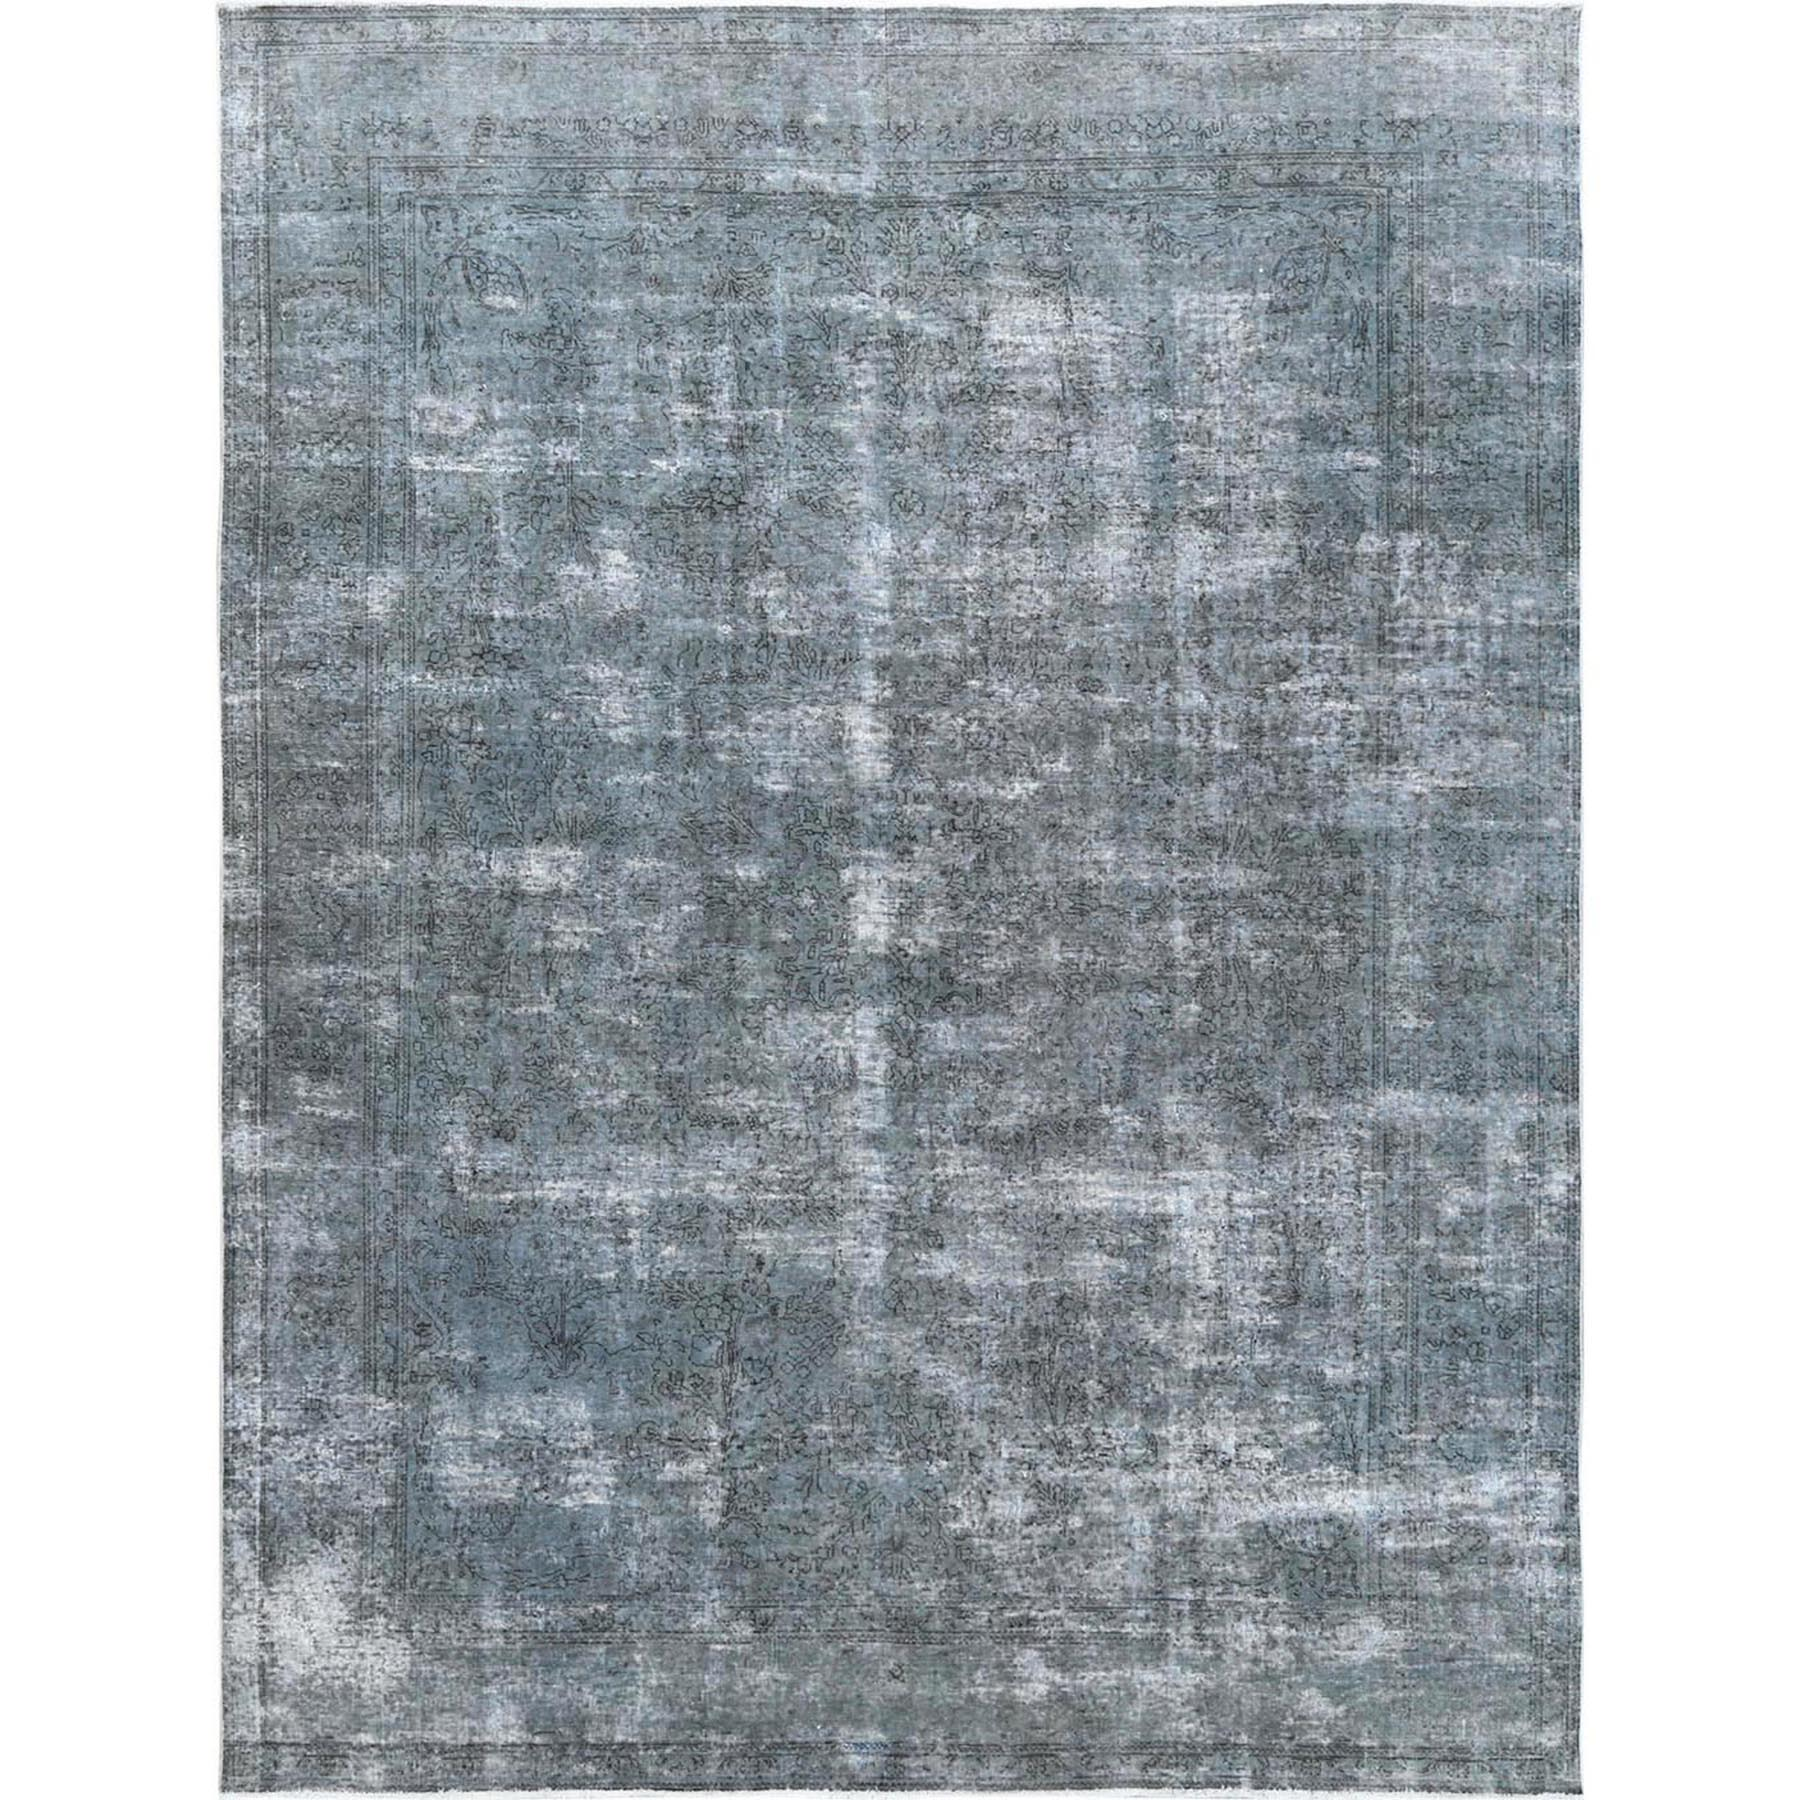 Transitional Collection Hand Knotted Grey Rug No: 1120648